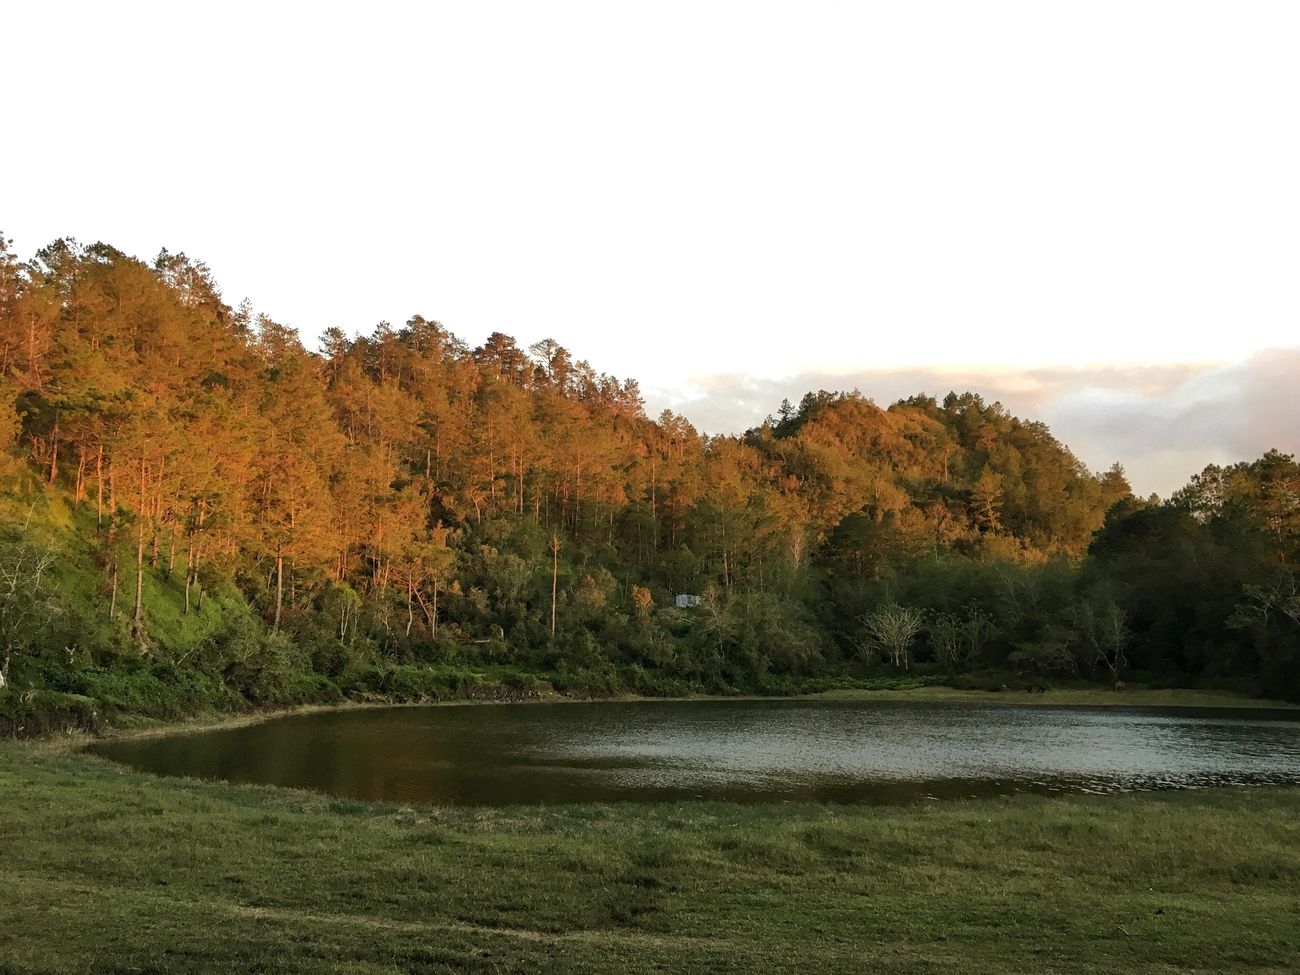 Lake Danum. Tree Nature Autumn Water Scenics Change Clear Sky Landscape Beauty In Nature No People Outdoors Tranquility Day Lake Sky Grass EyeEm Nature Lover Eyeem Philippines